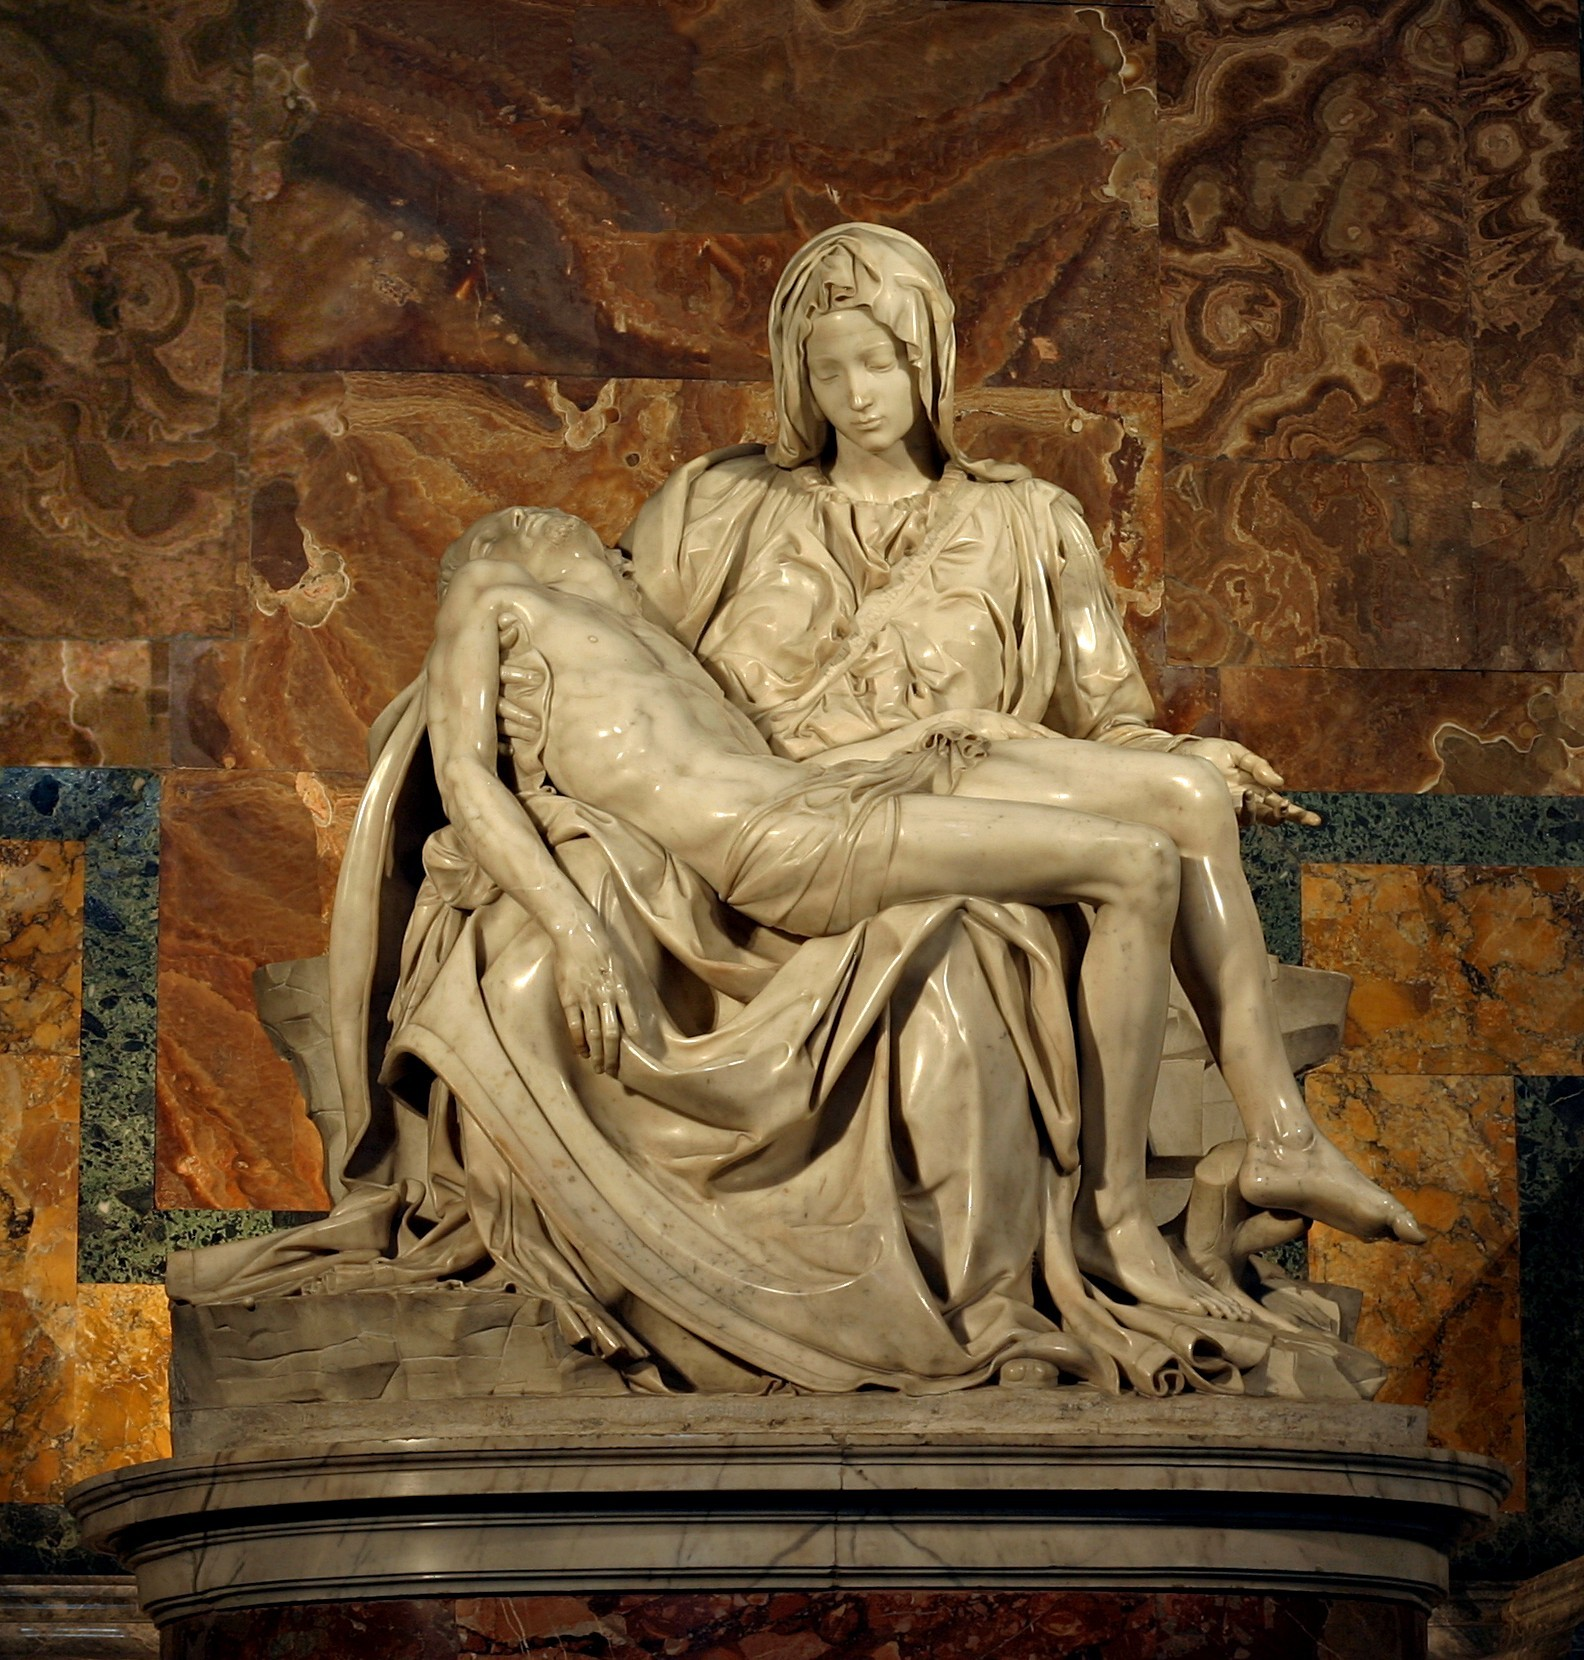 Photo of Michelangelo's Pieta by Stanislav Traykov